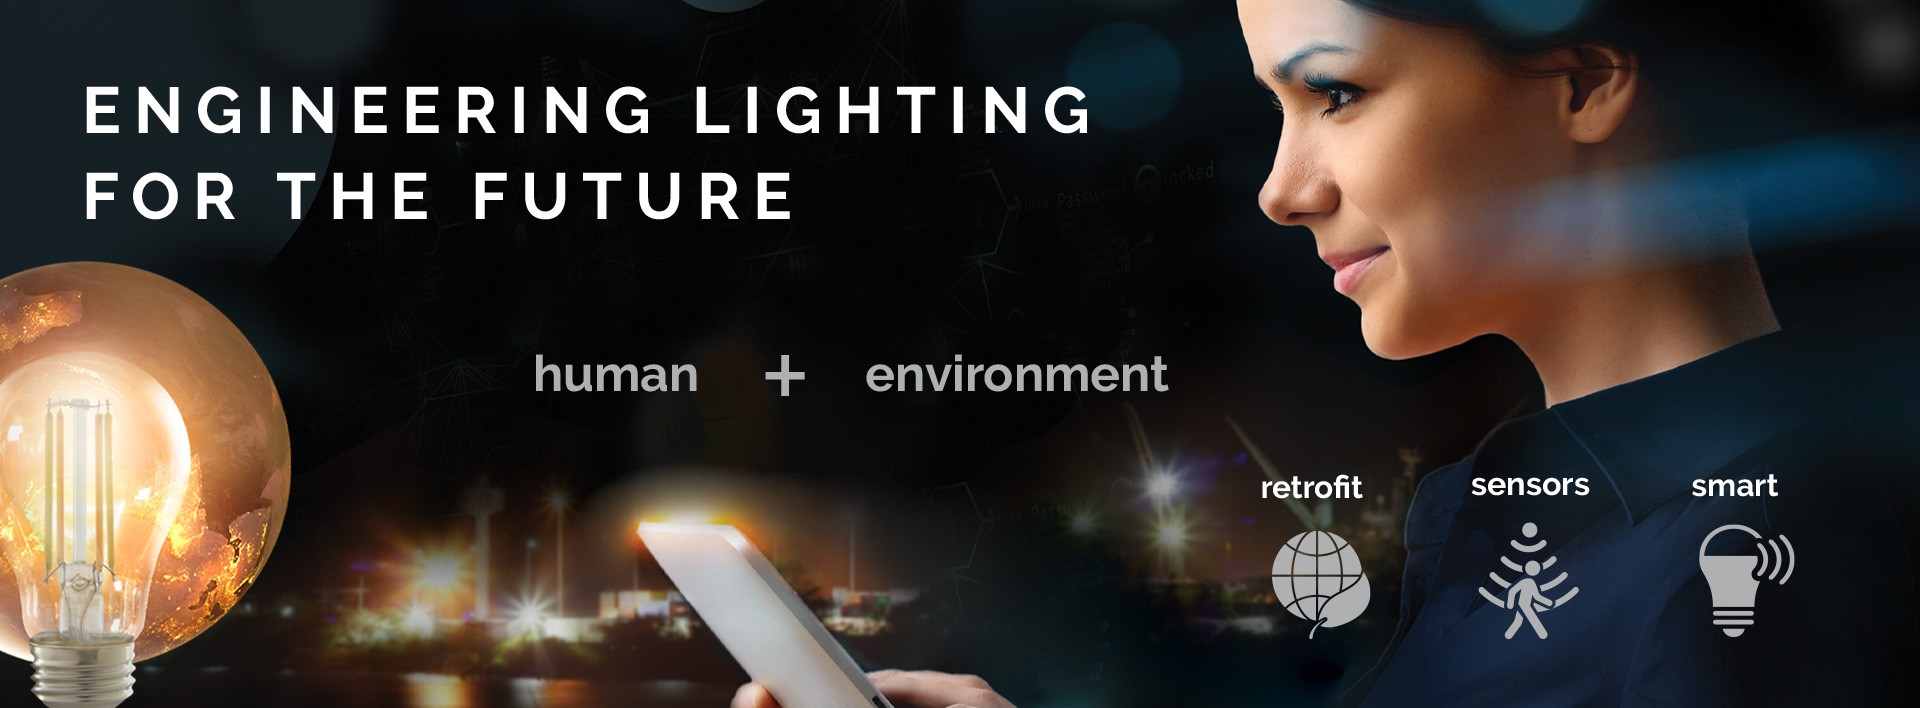 Engineering Lighting For The Future - Human Environment